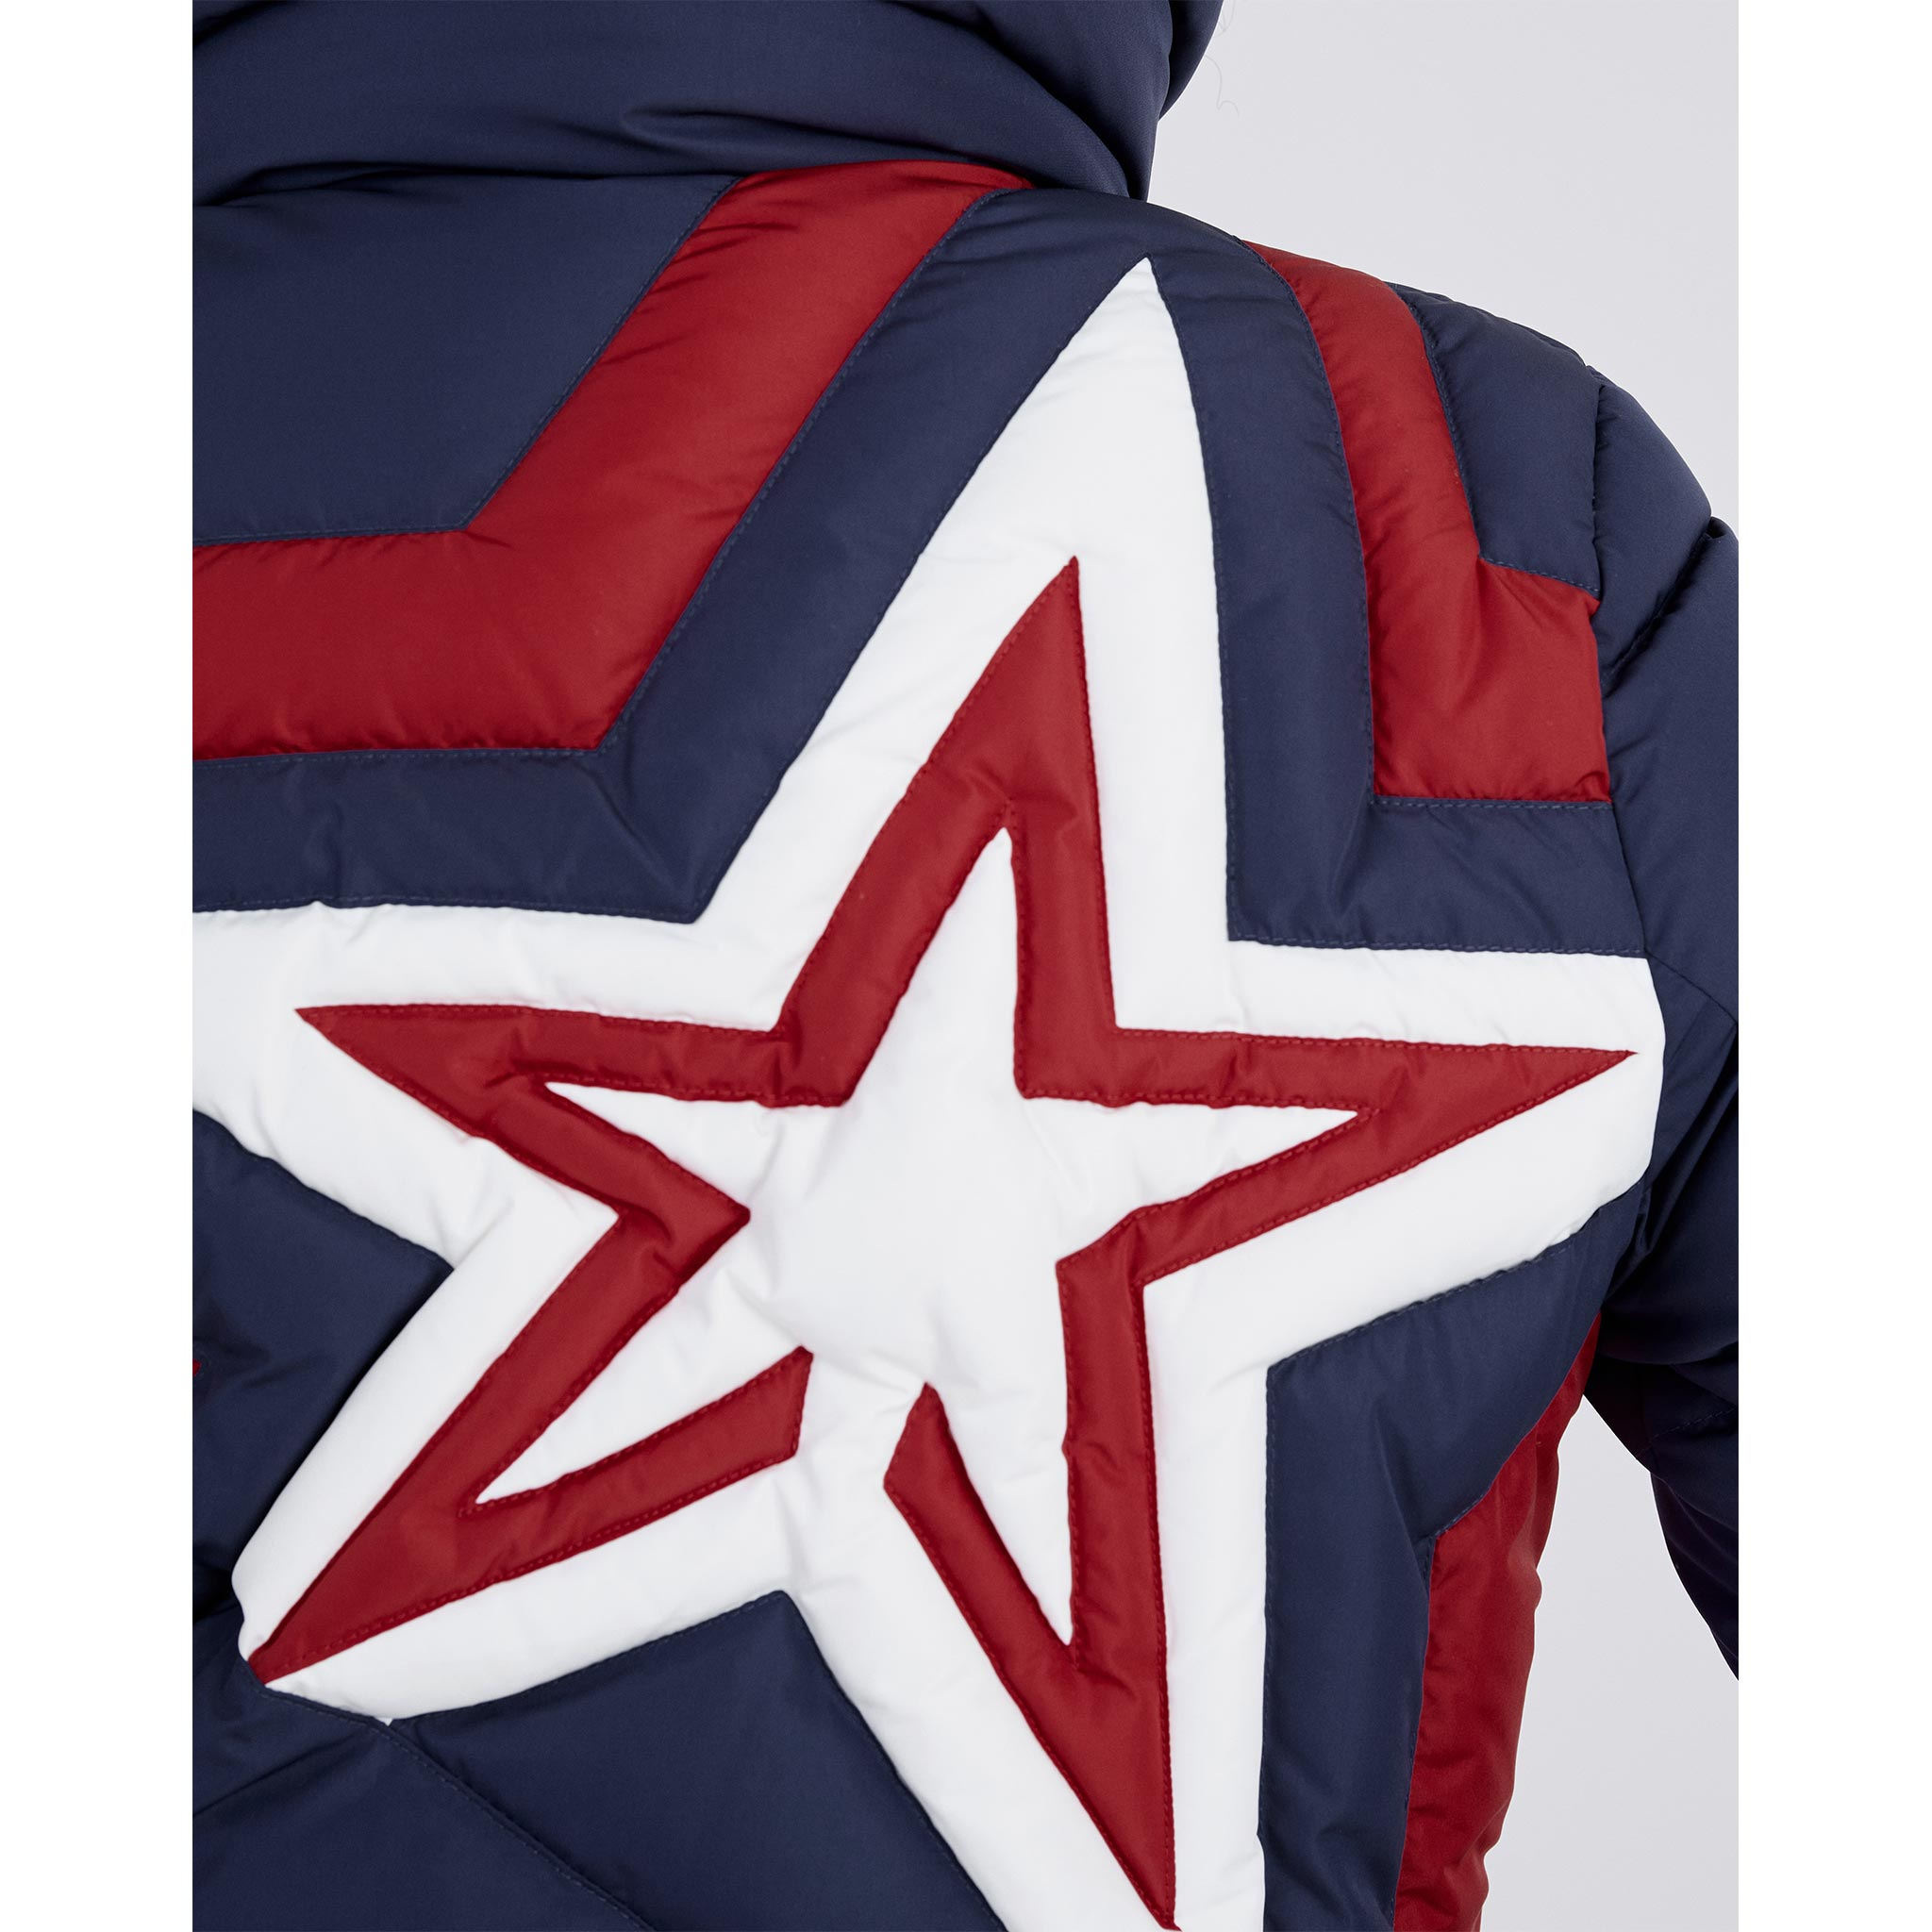 Super Star Jacket